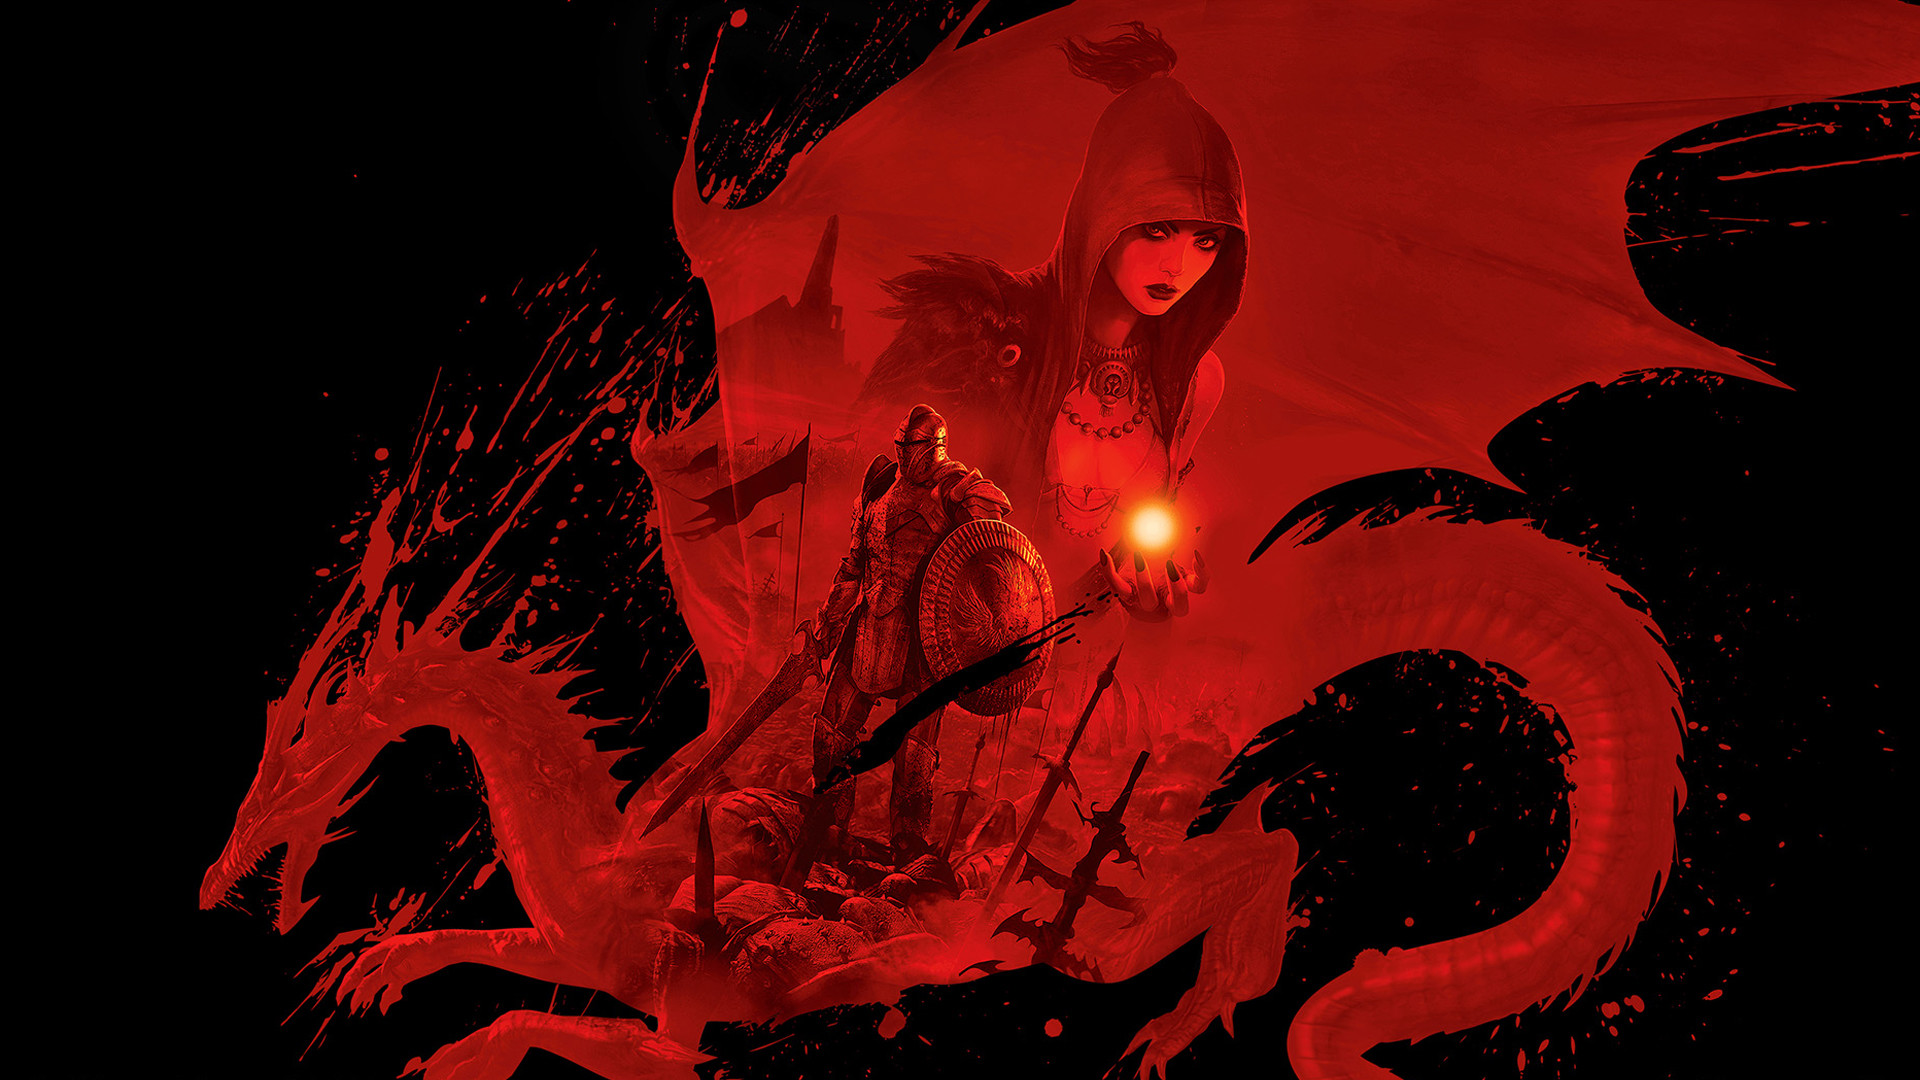 Dragon Age Origins – The only game I am committed to finishing right now.